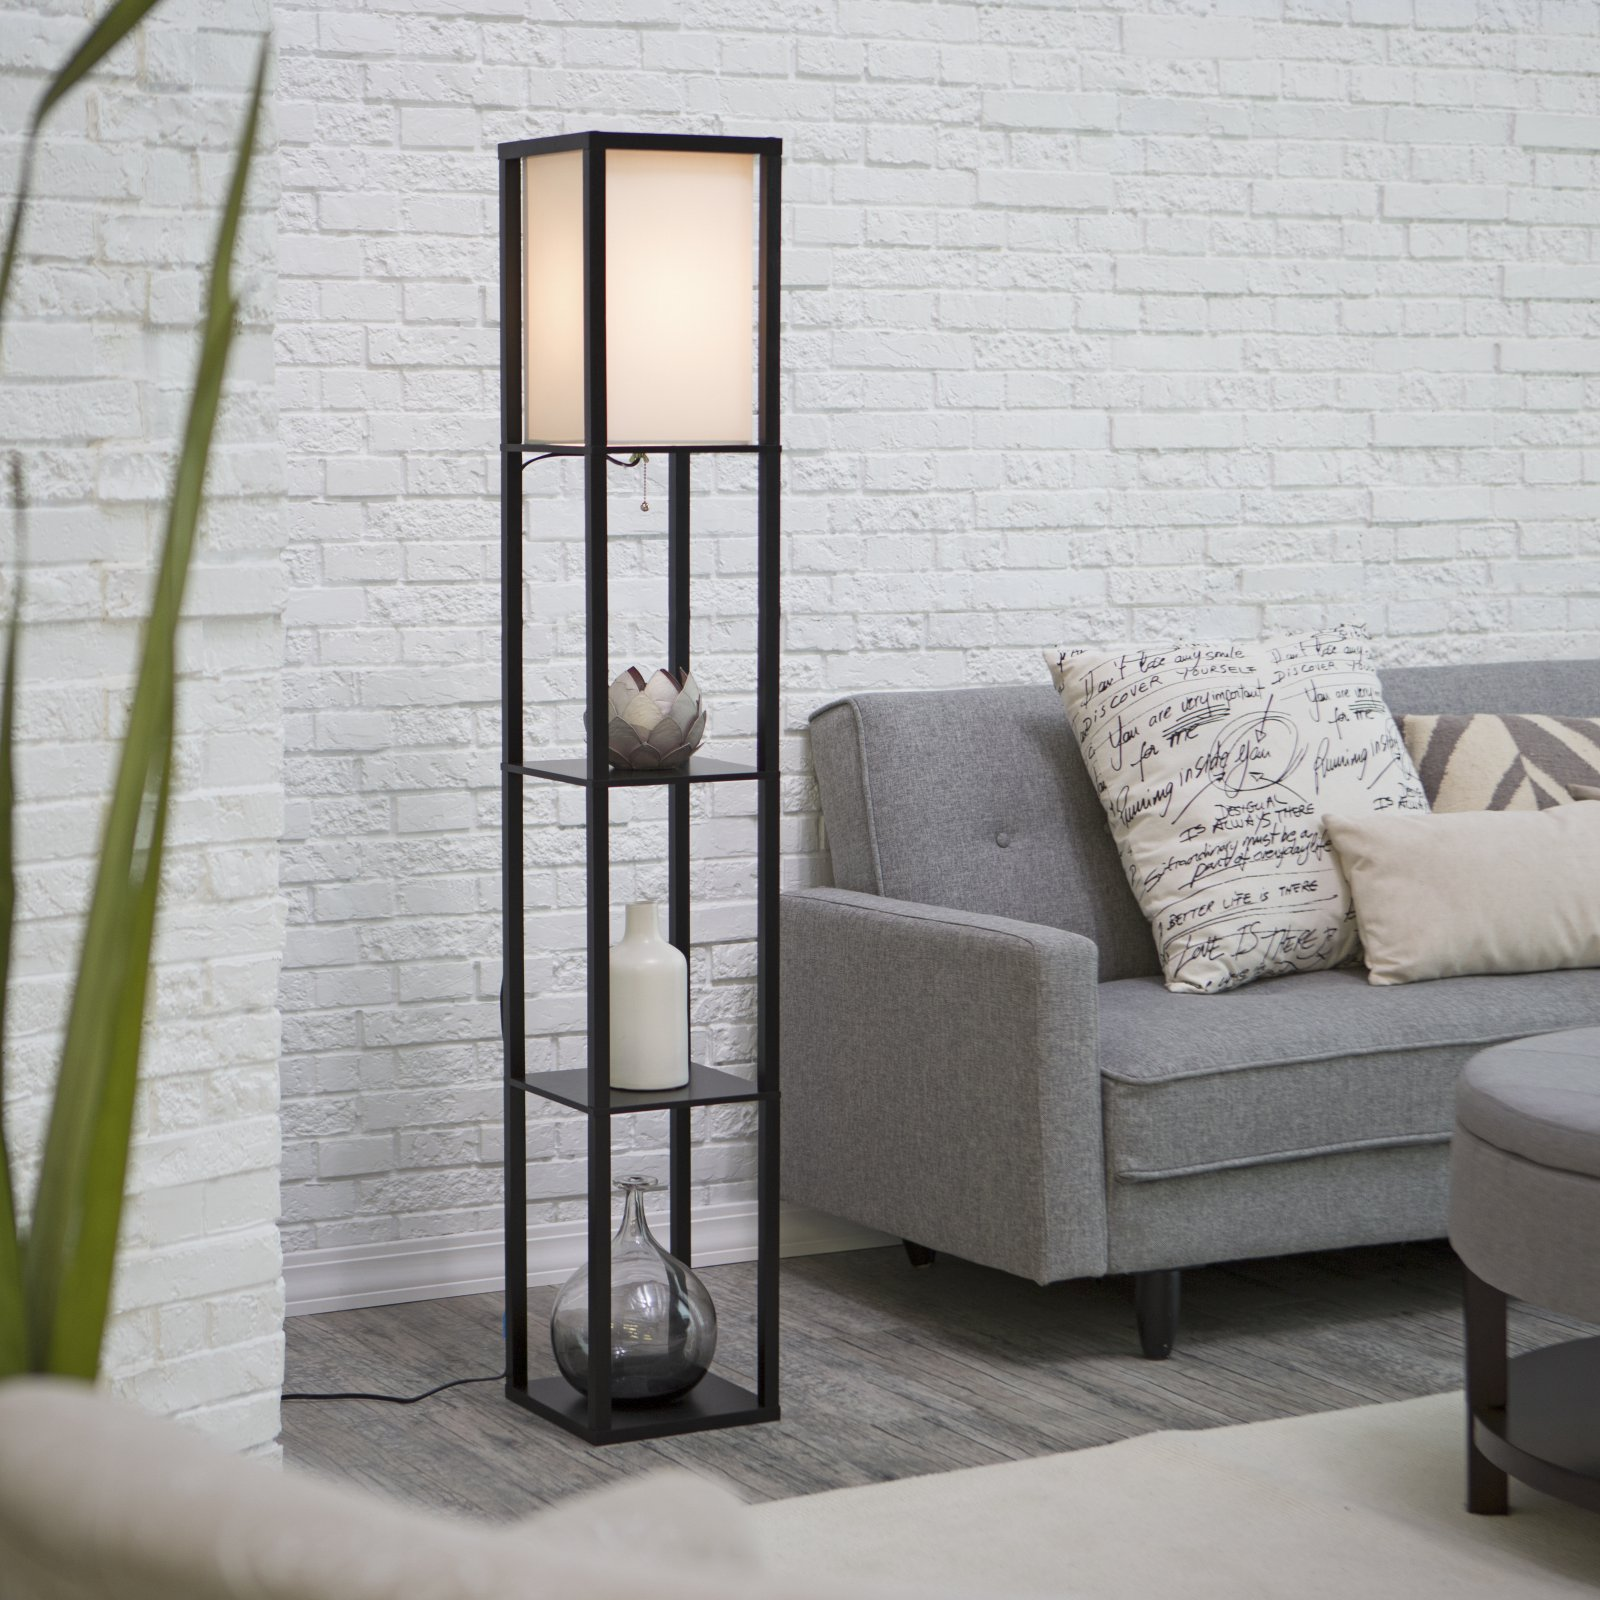 Adesso Lighting 3138-01 Wright Etagere Floor Lamp by Overstock